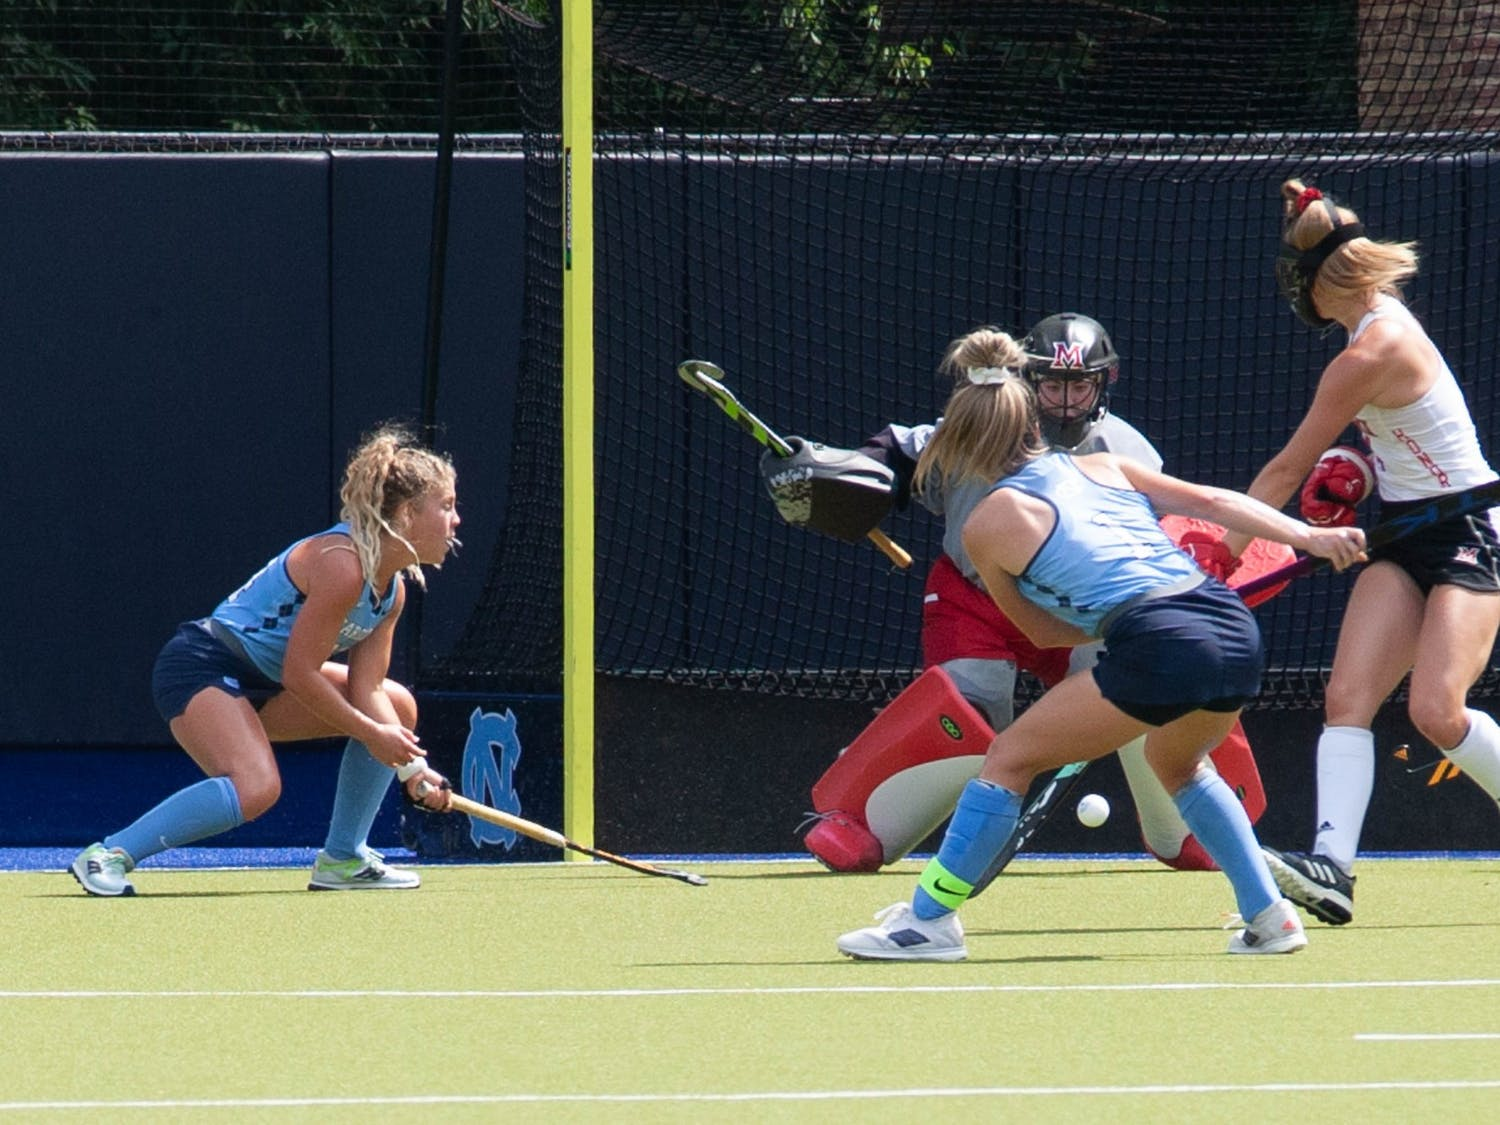 UNC senior forward Erin Matson (1) makes a goal attempt during the field hockey game against the Miami Redhawks at Karen Shelton Stadium on Sept. 19, 2021. The Tar Heels defeated the Redhawks 7-2.